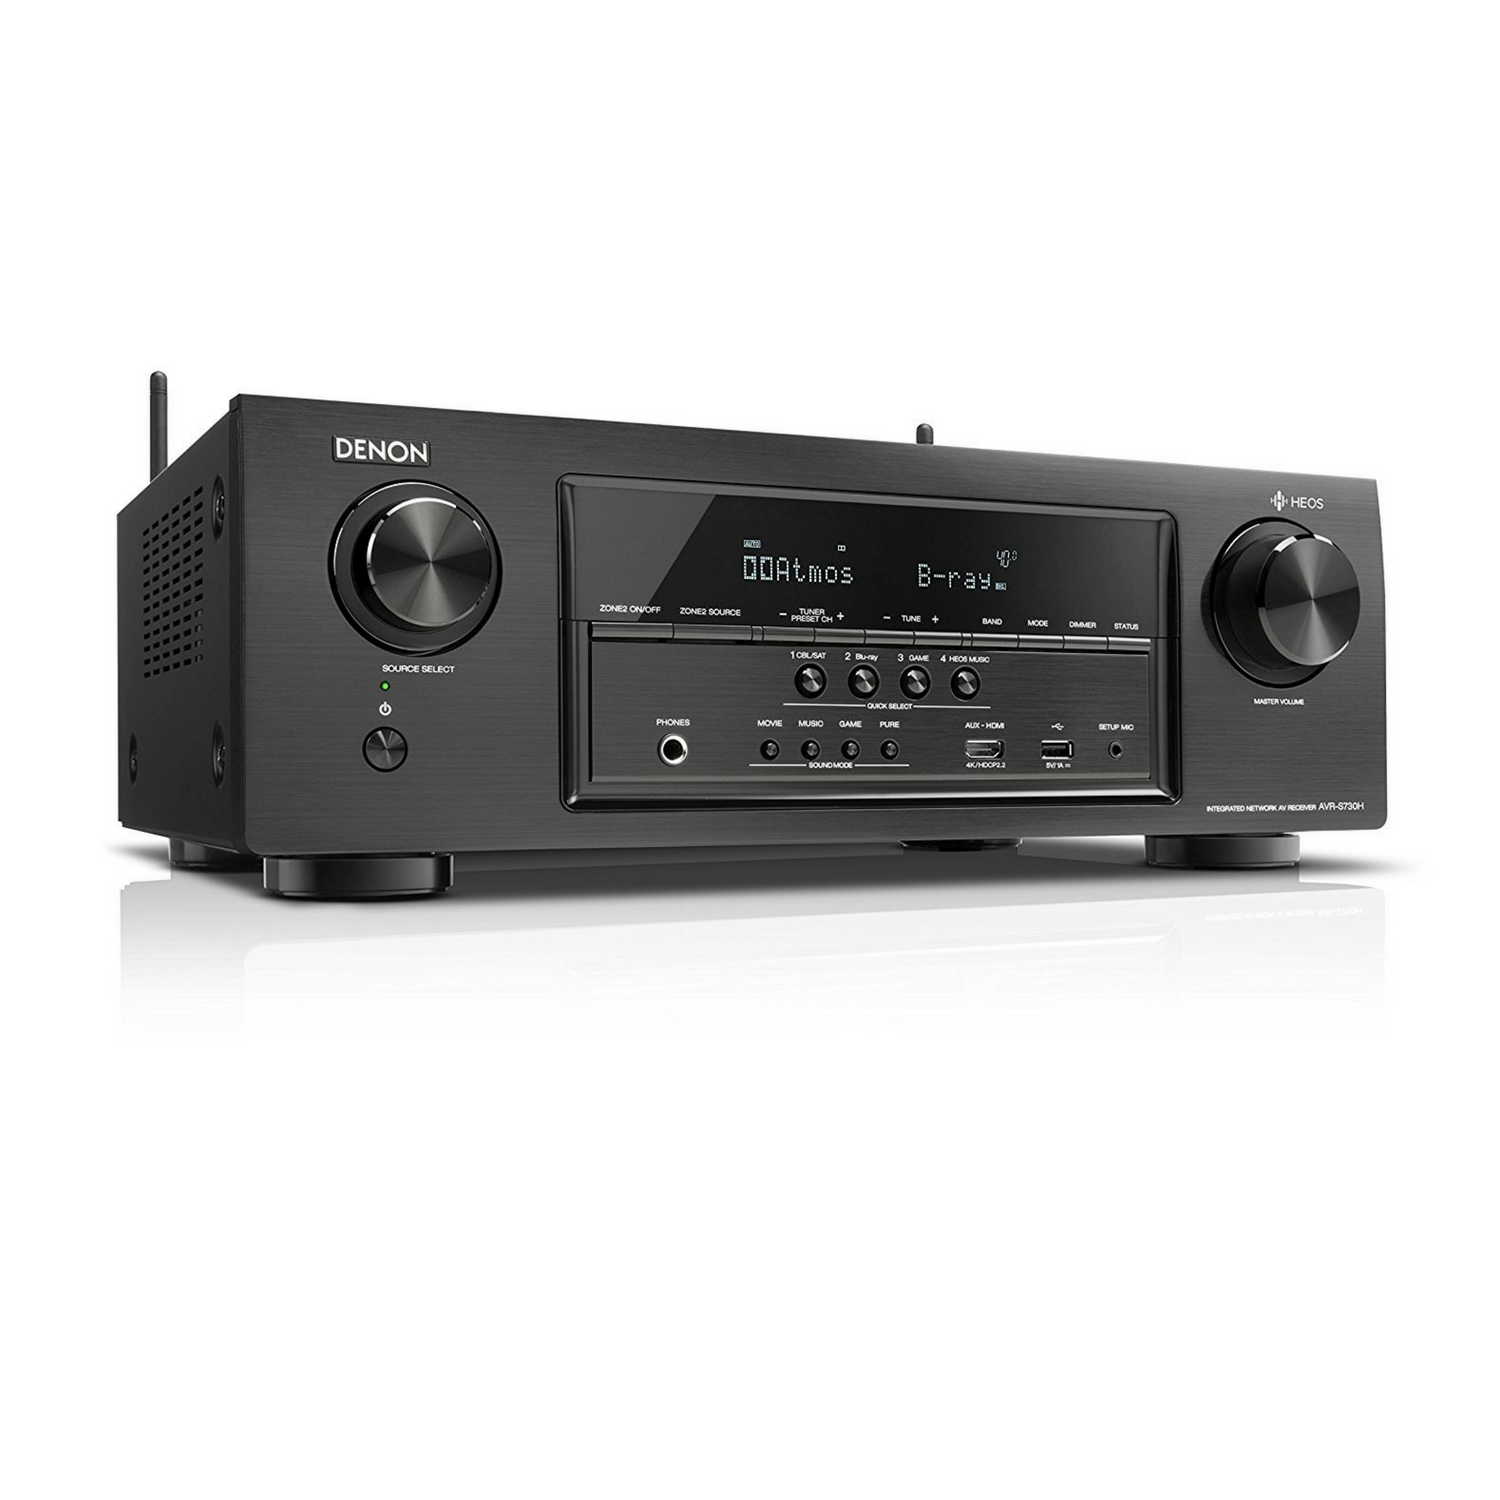 Denon 7.2 Channel AV Receiver with Built-in HEOS wireless technology